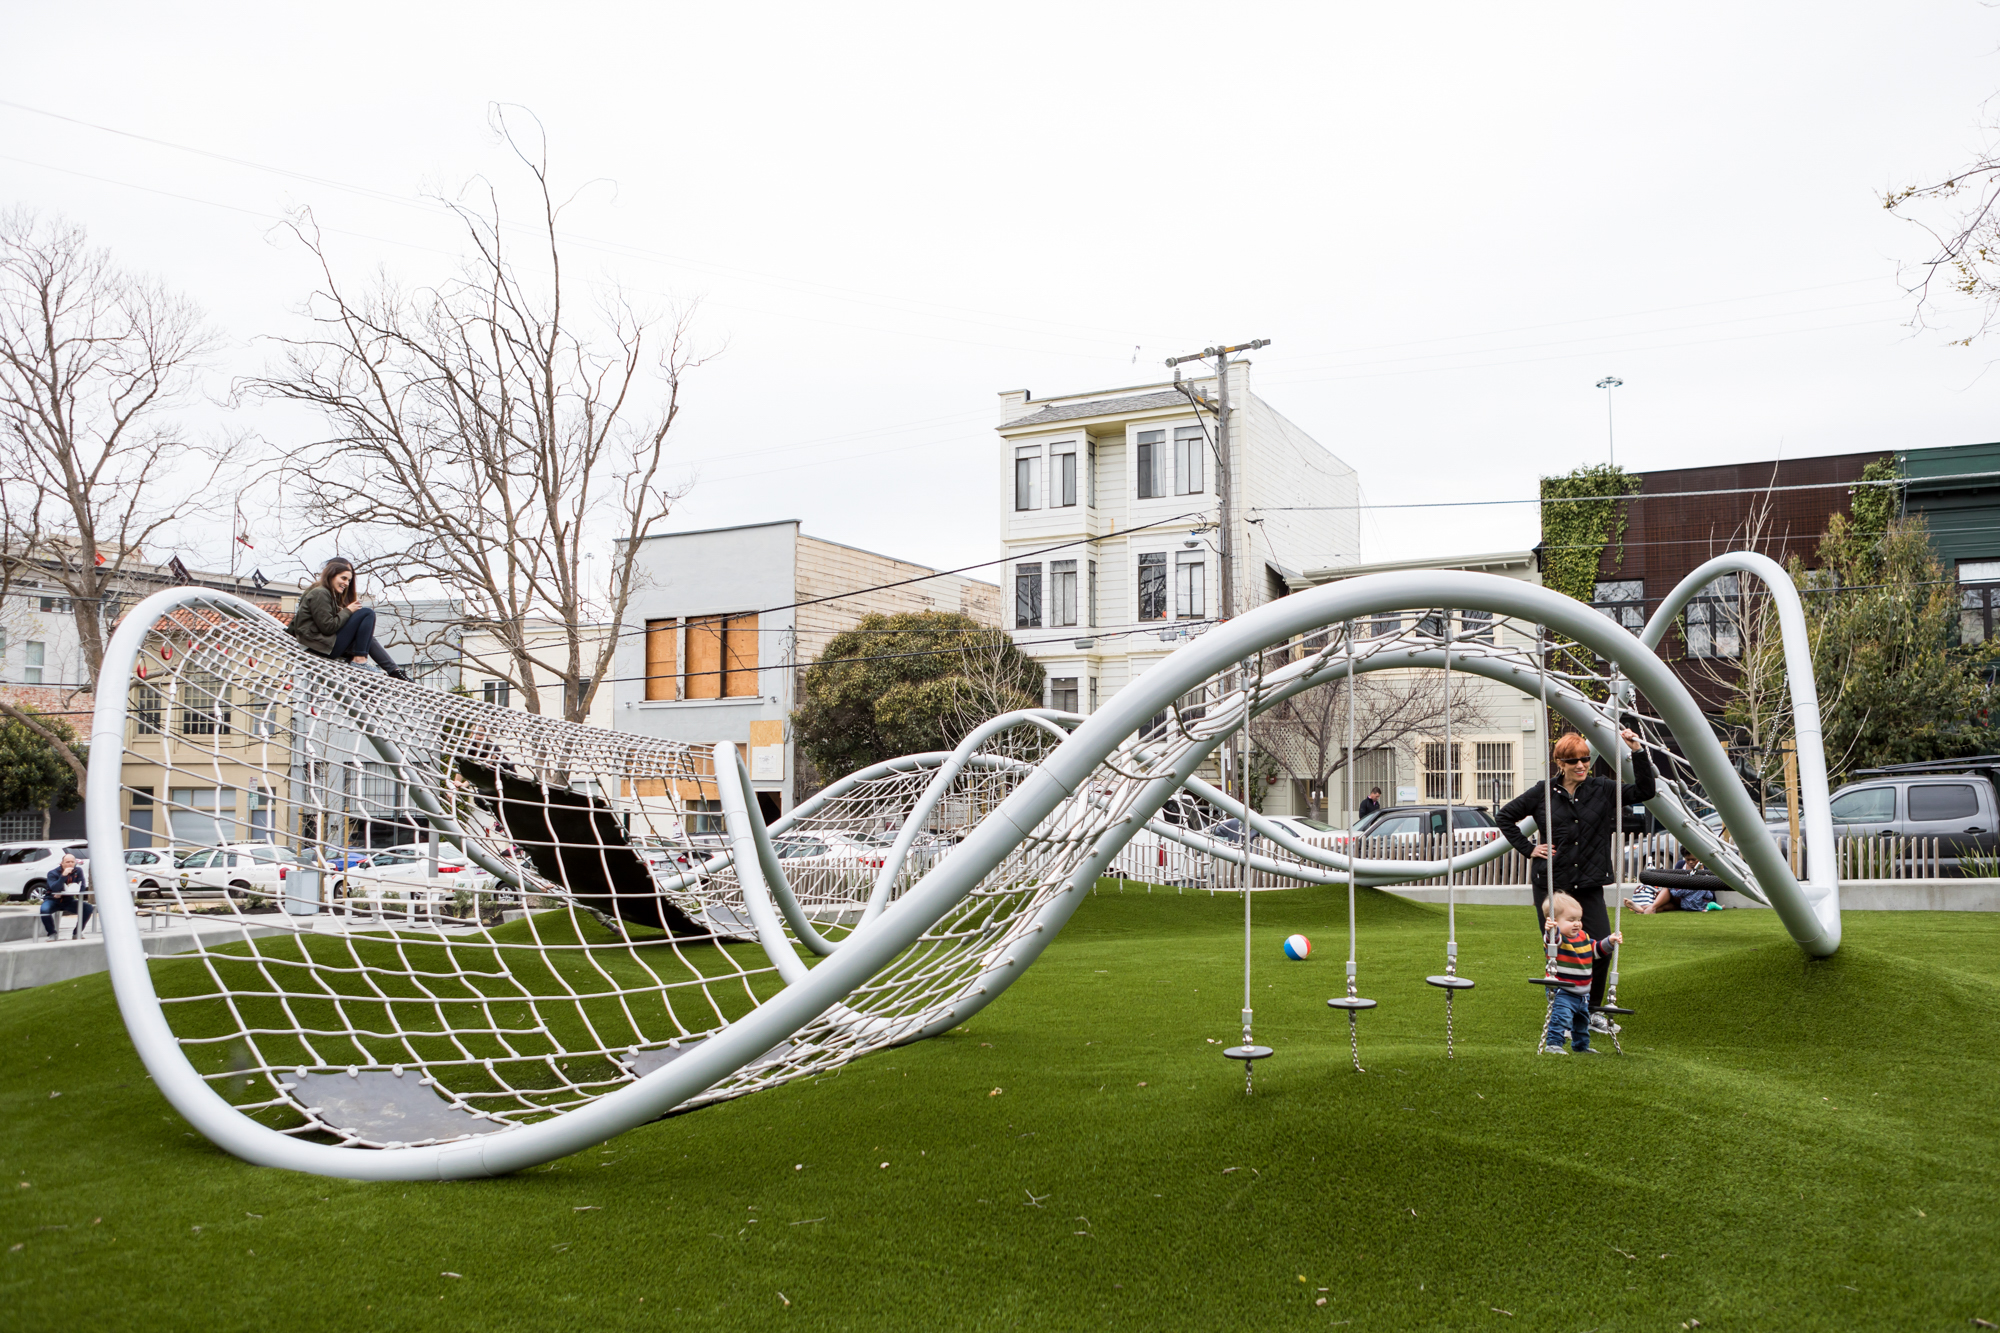 A San Francisco playground with a curved jungle gym.